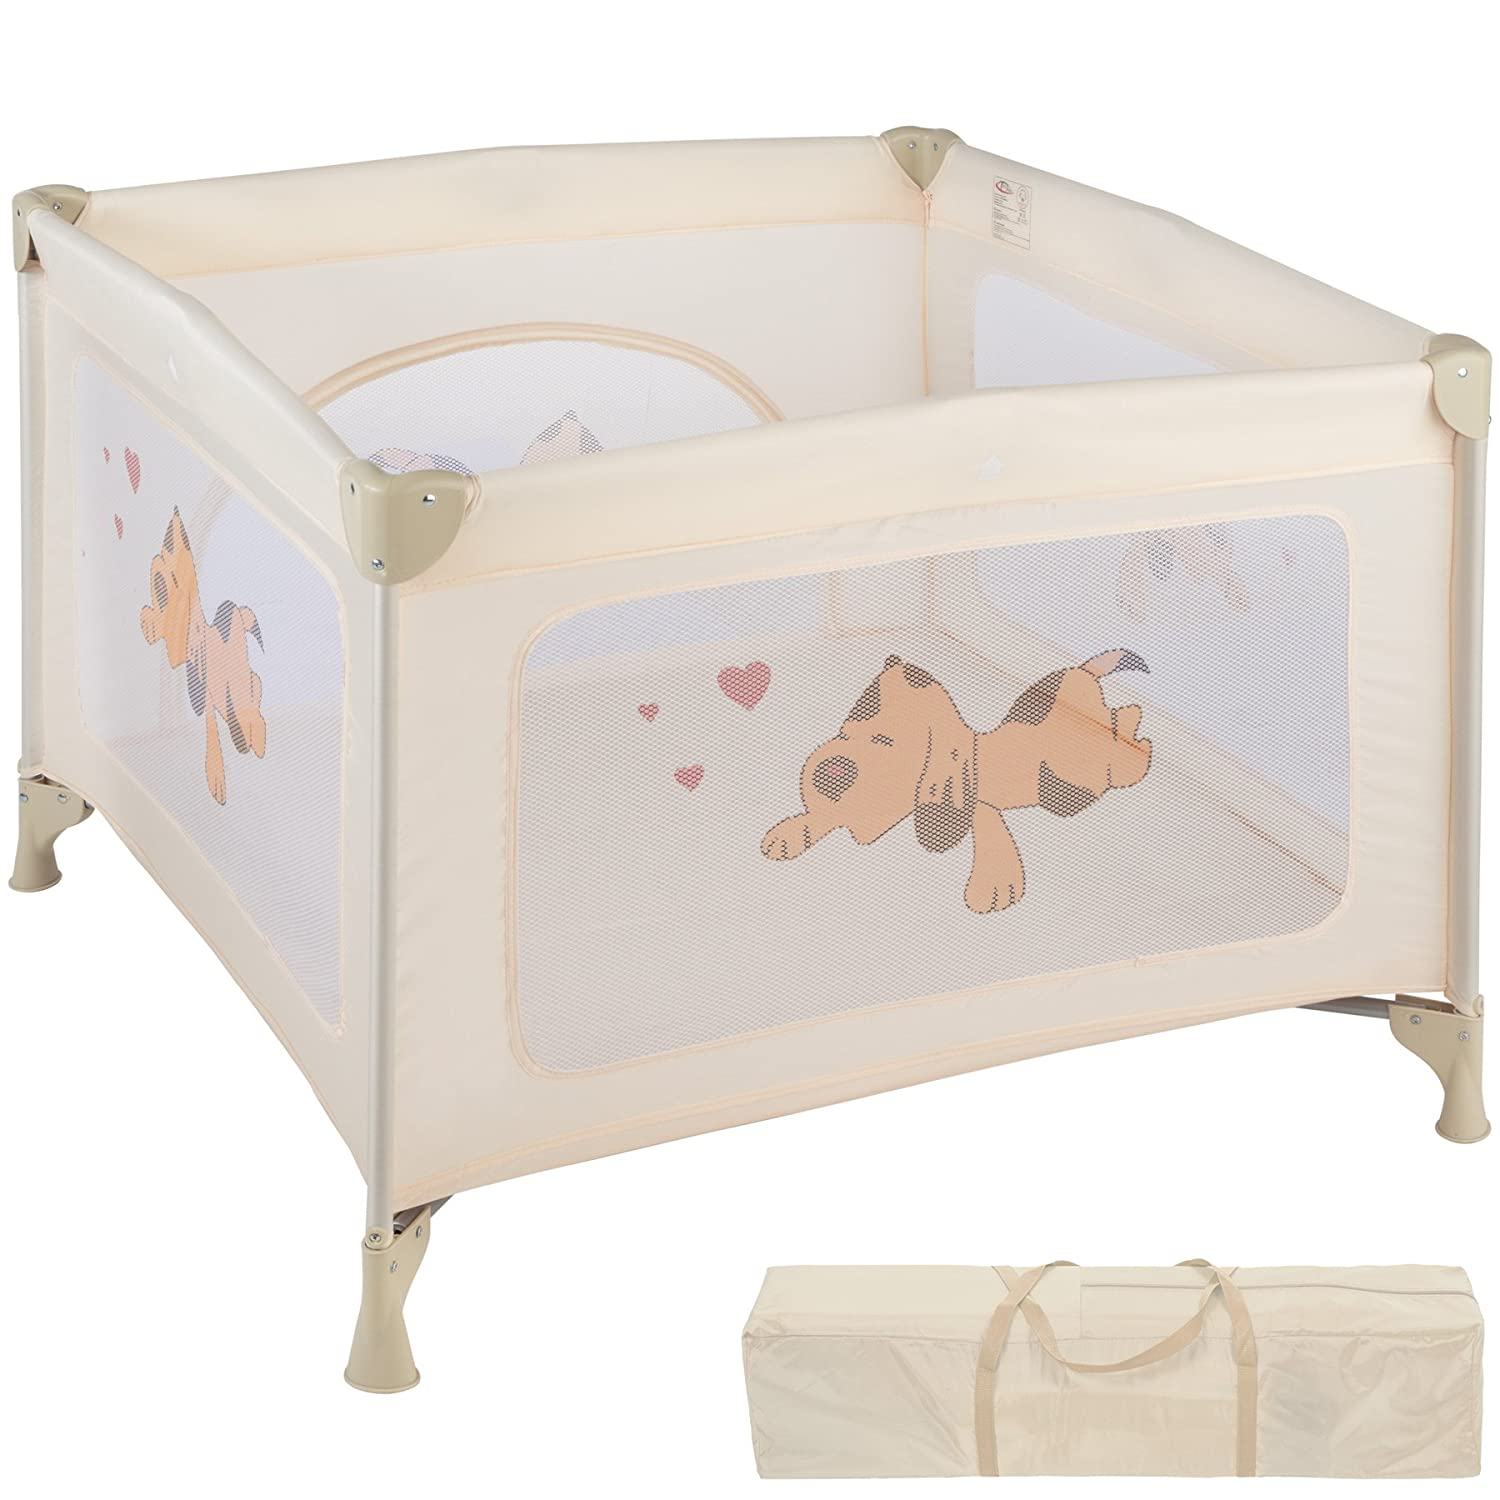 TecTake Portable Child Baby Infant Playpen Travel Cot Bed Crawl Play Area new beige 800343